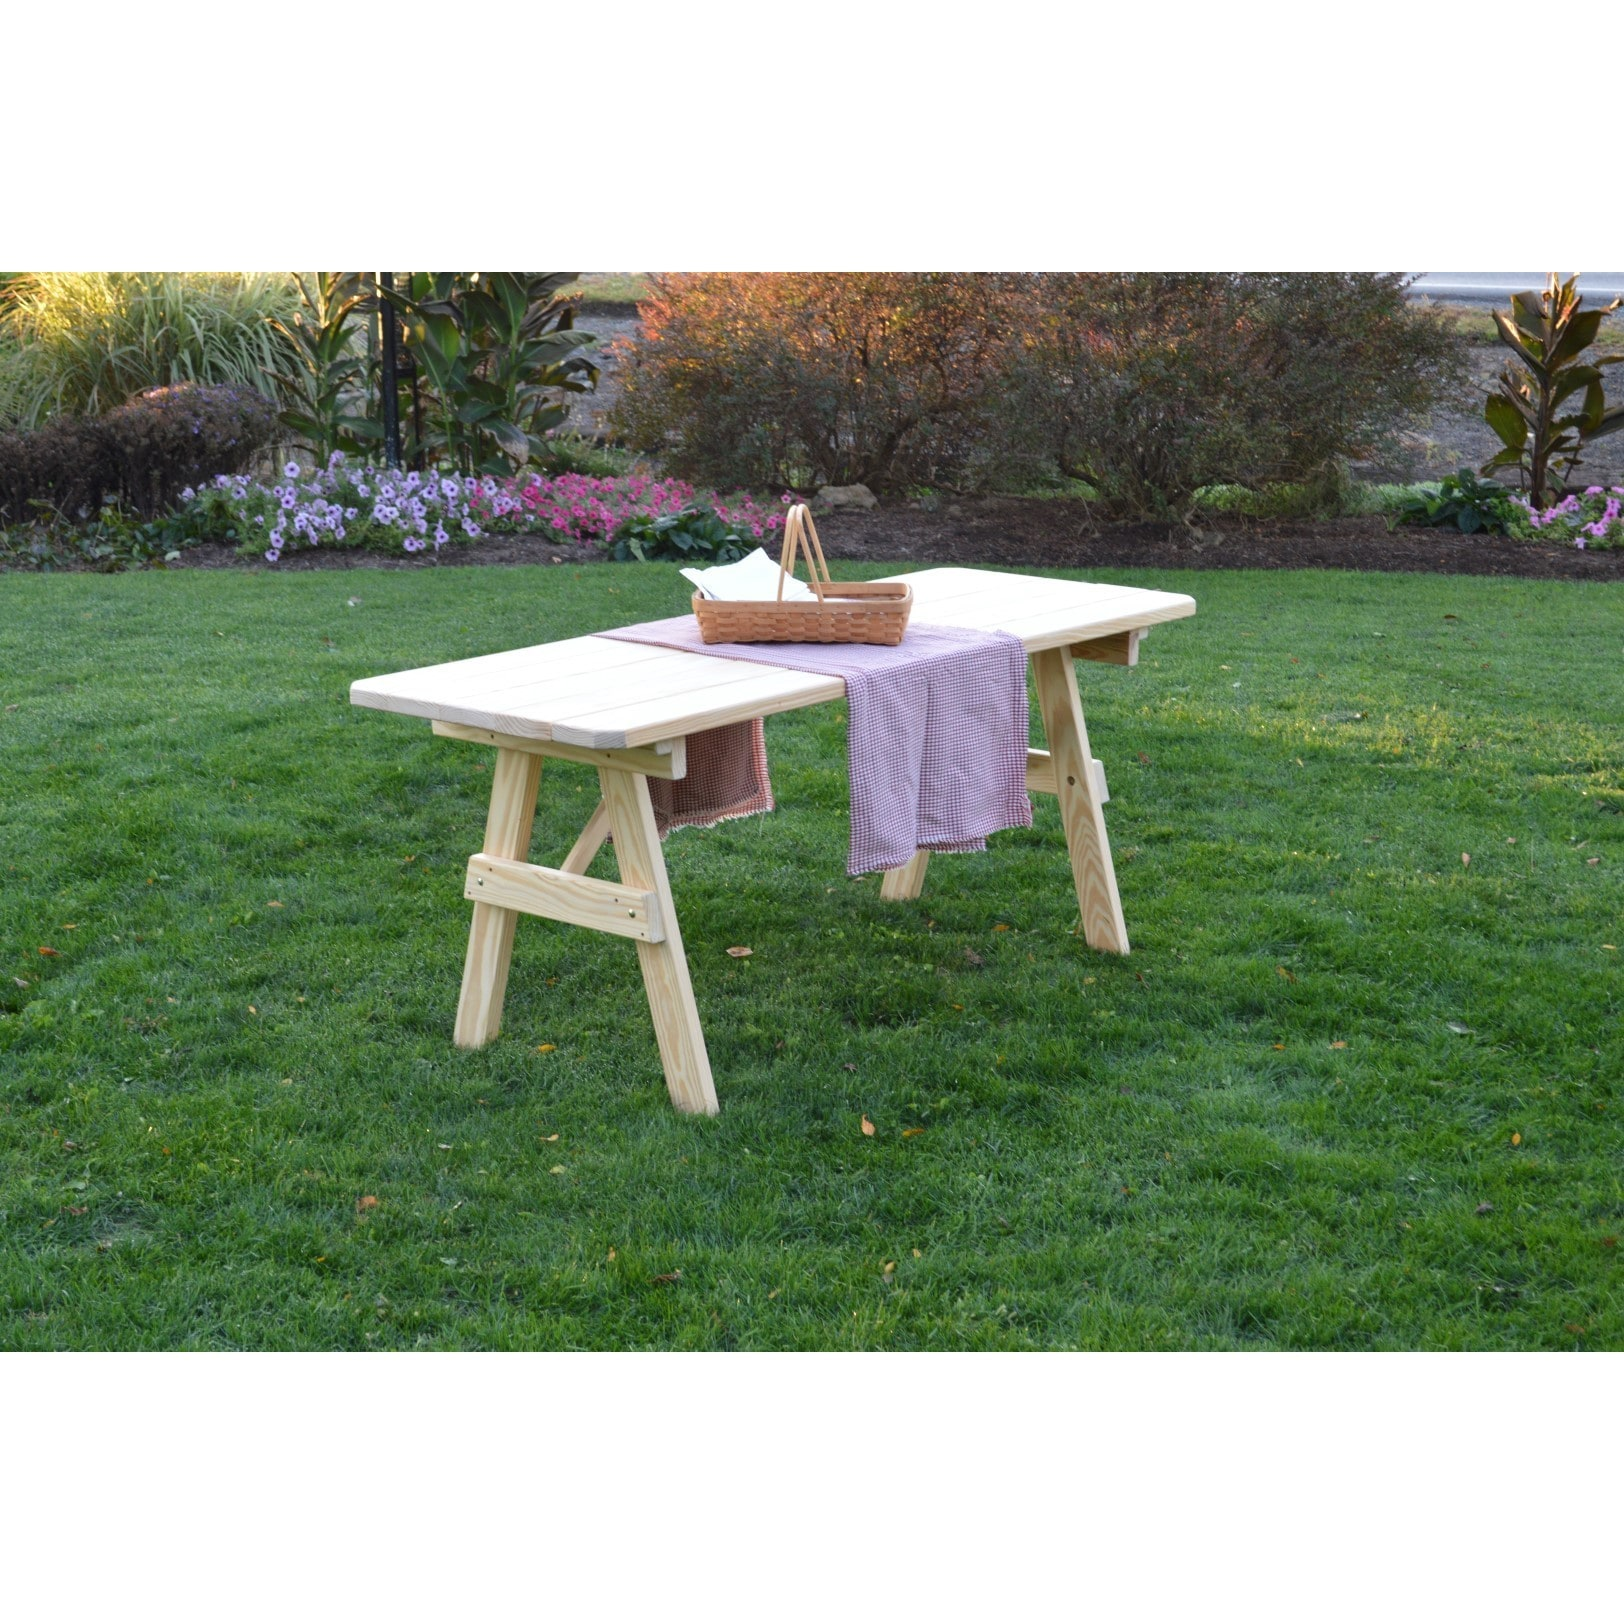 Ordinaire Shop Pressure Treated Pine Unfinished Picnic Table ONLY   4,5,6 Or 8 Foot    Free Shipping Today   Overstock.com   15371580